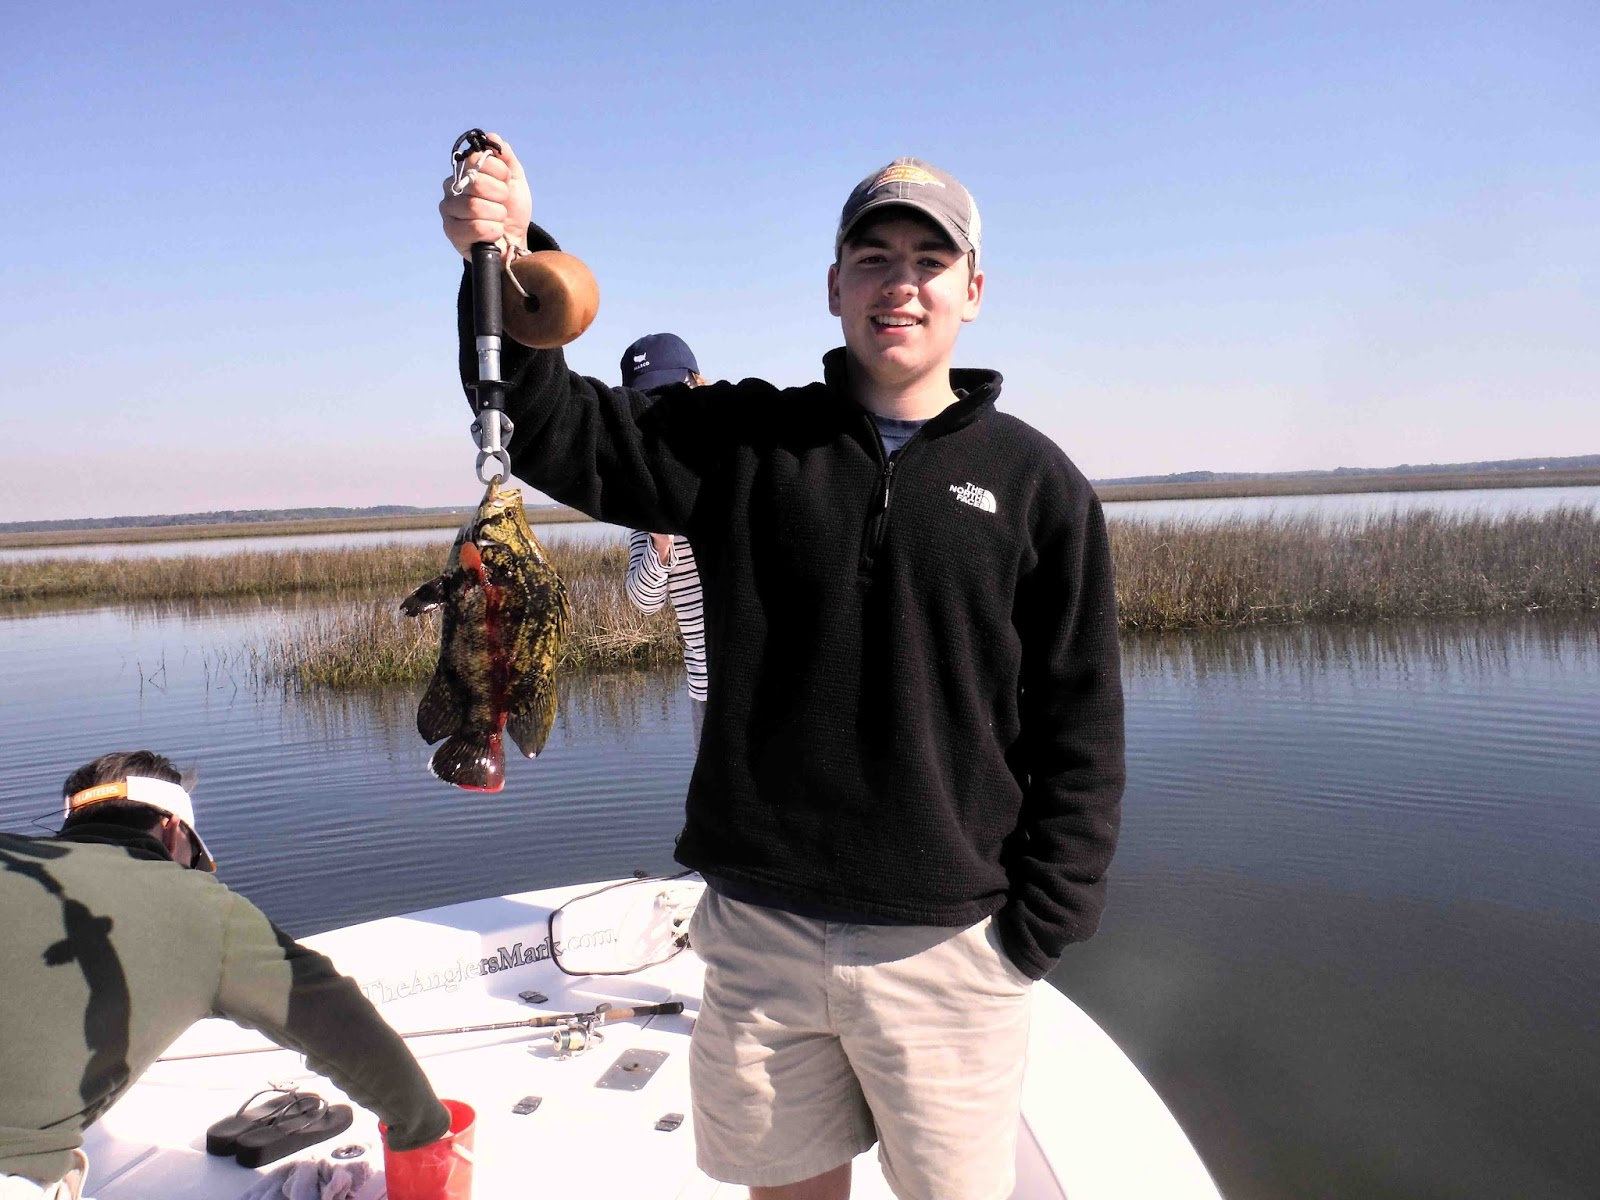 amelia island fishing reports surprise fish